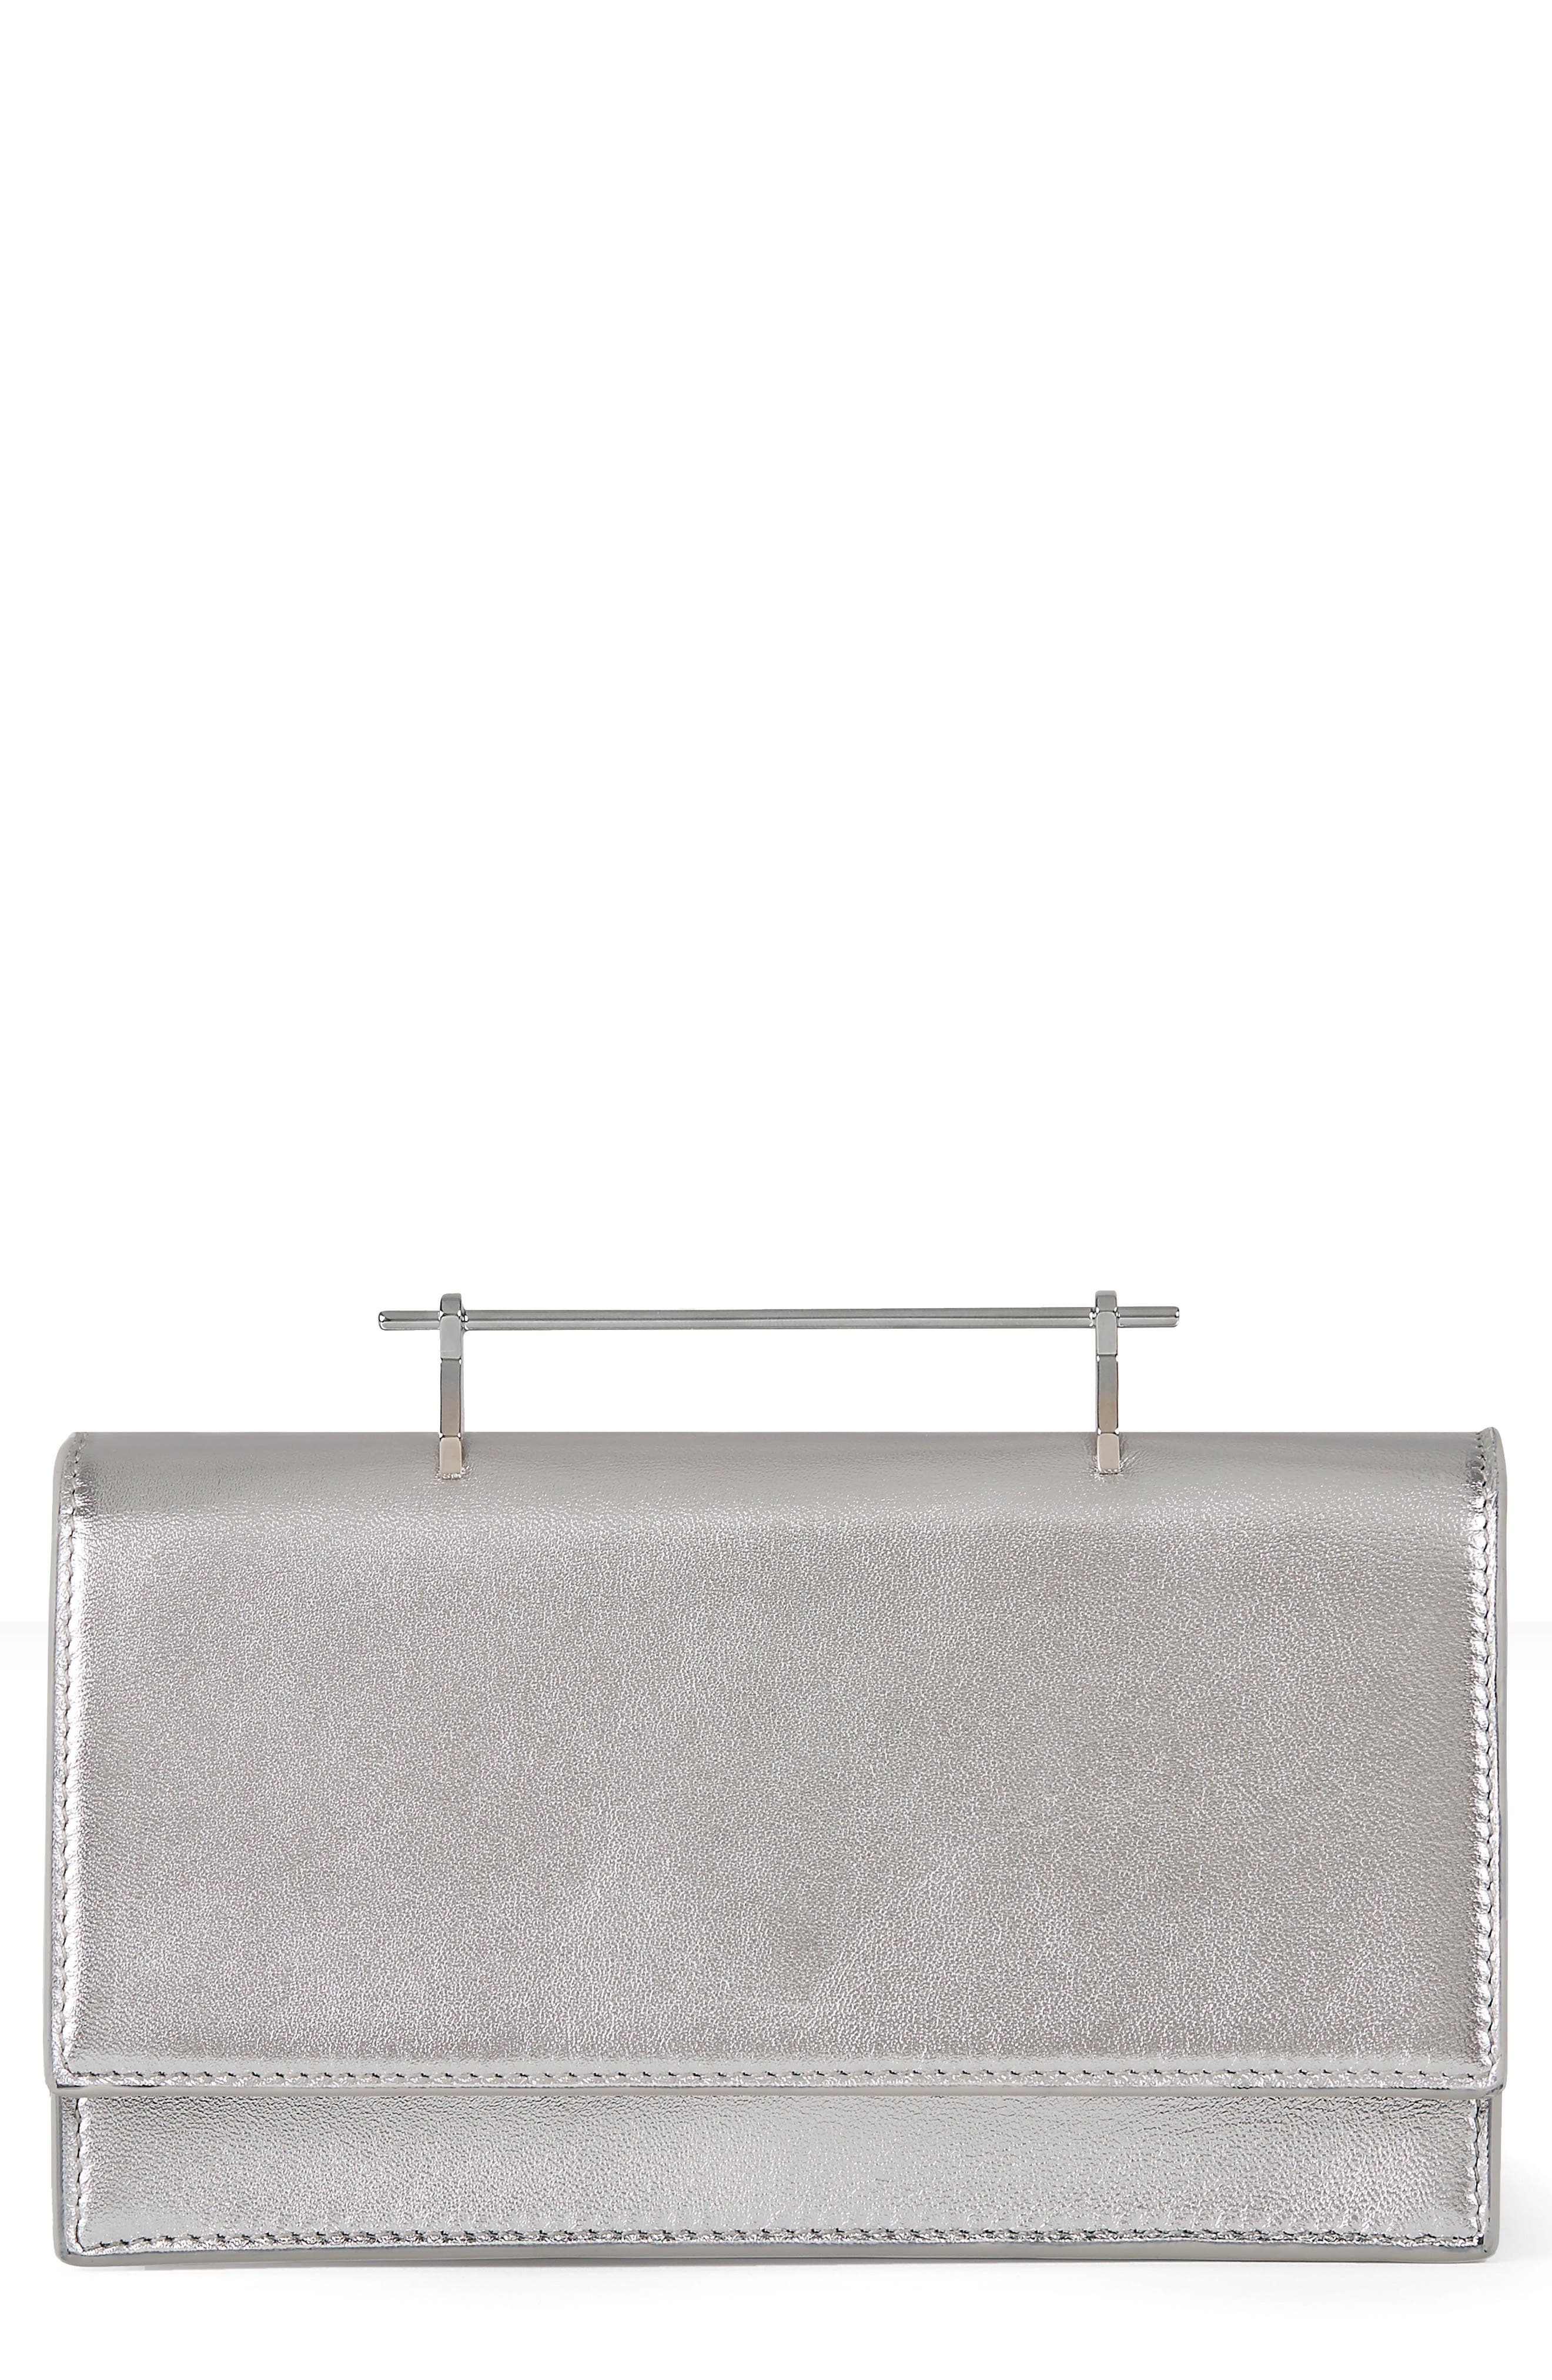 Alexia Metallic Leather Shoulder Bag,                             Main thumbnail 1, color,                             040